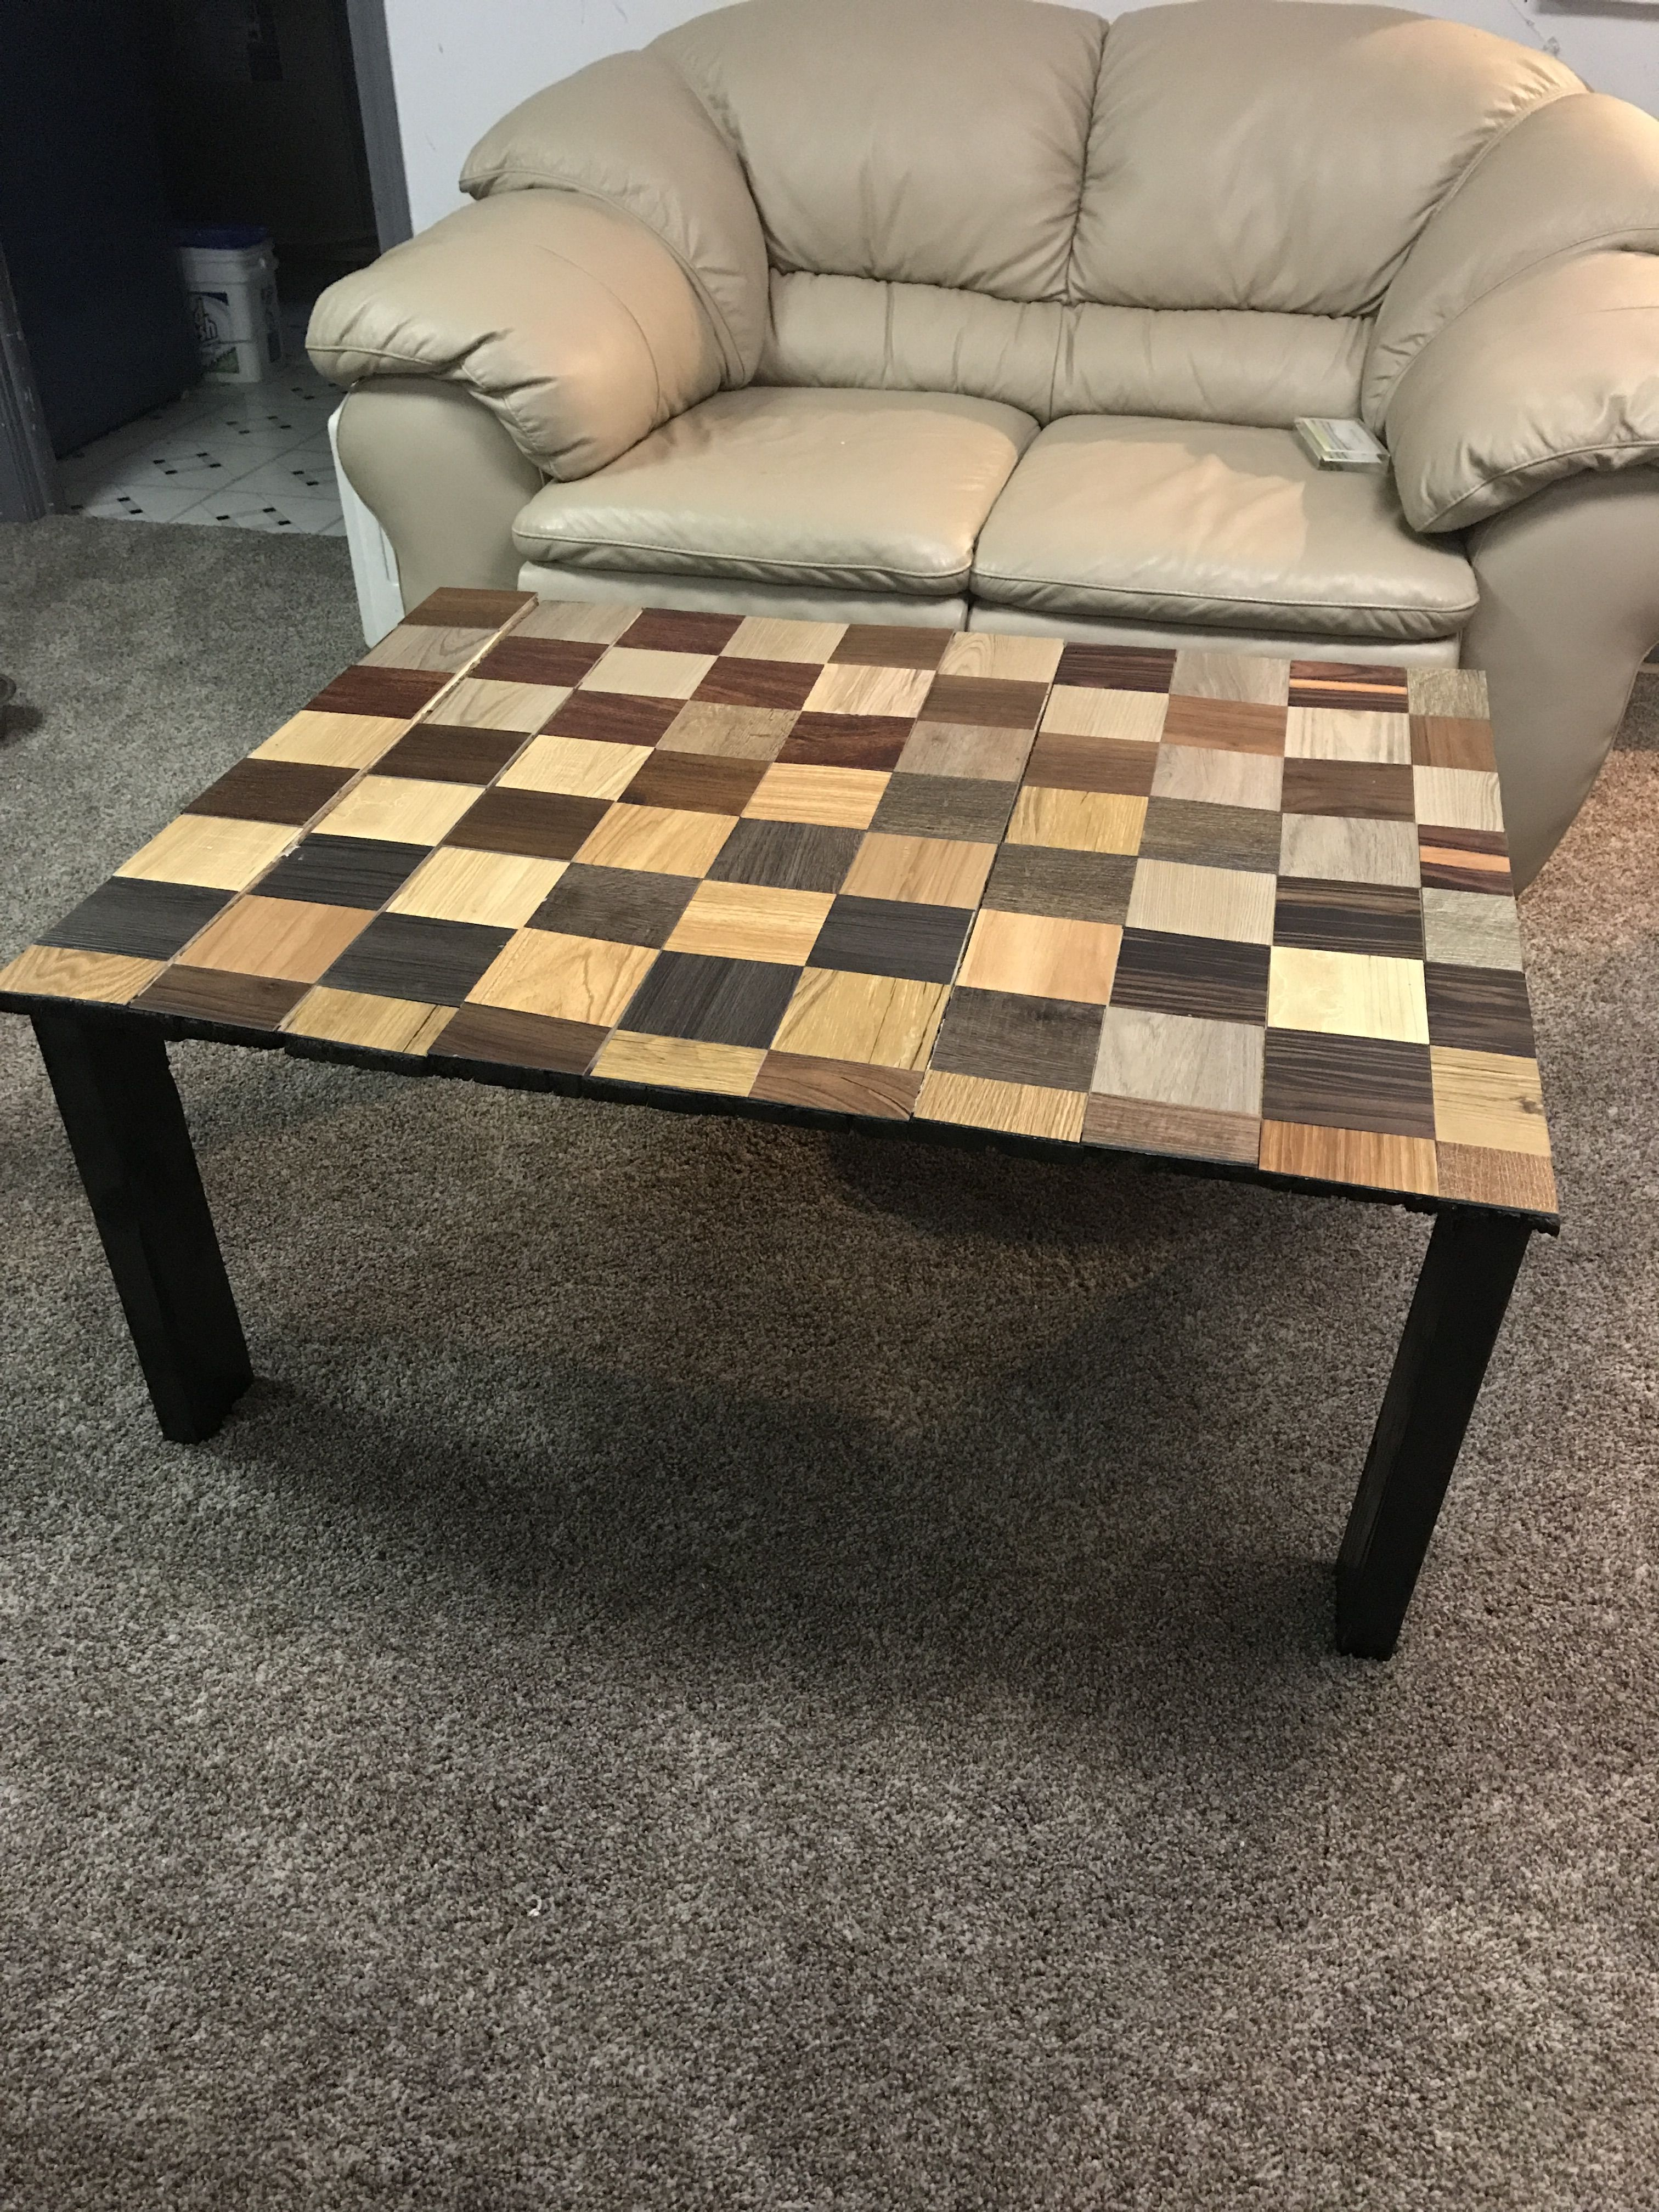 Completely Free Coffee Table Used Pallet Wood And Free - Diy Table Using Flooring